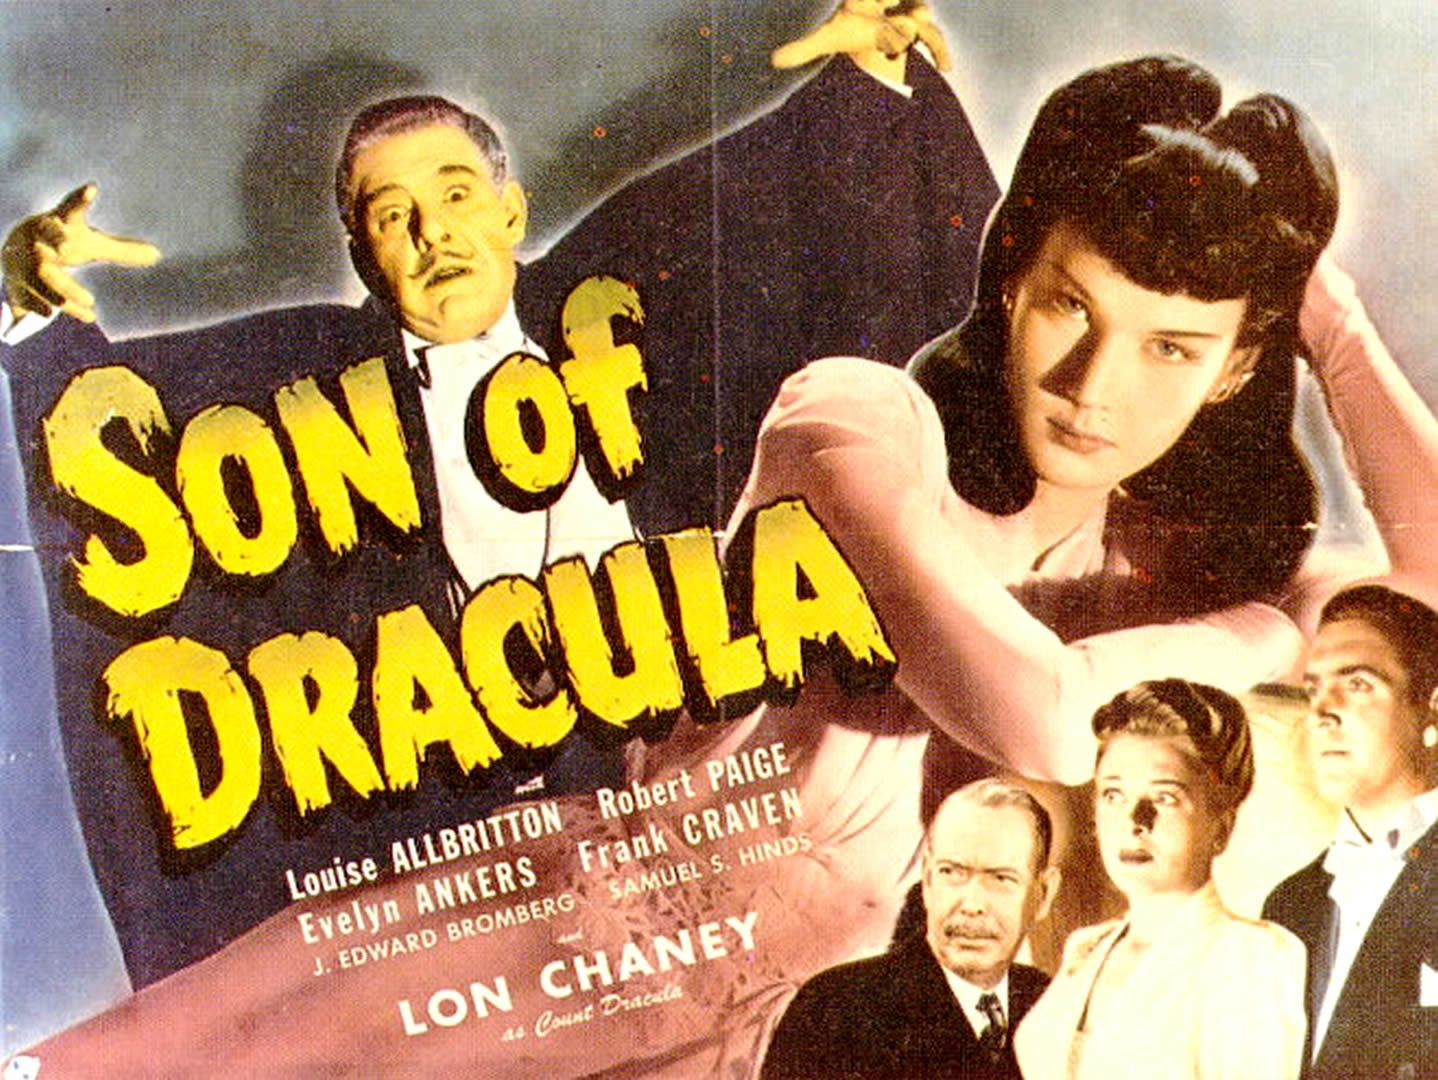 http://ayay.co.uk/backgrounds/vintage_movie_posters/1940s/SON-OF-DRACULA.jpg